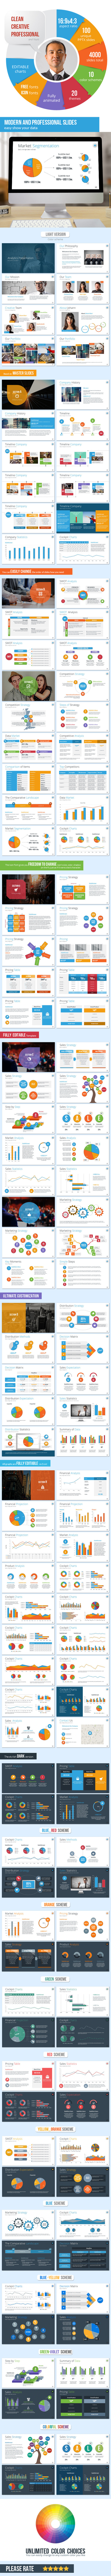 Analytics PowerPoint Presentation Template - Business PowerPoint Templates